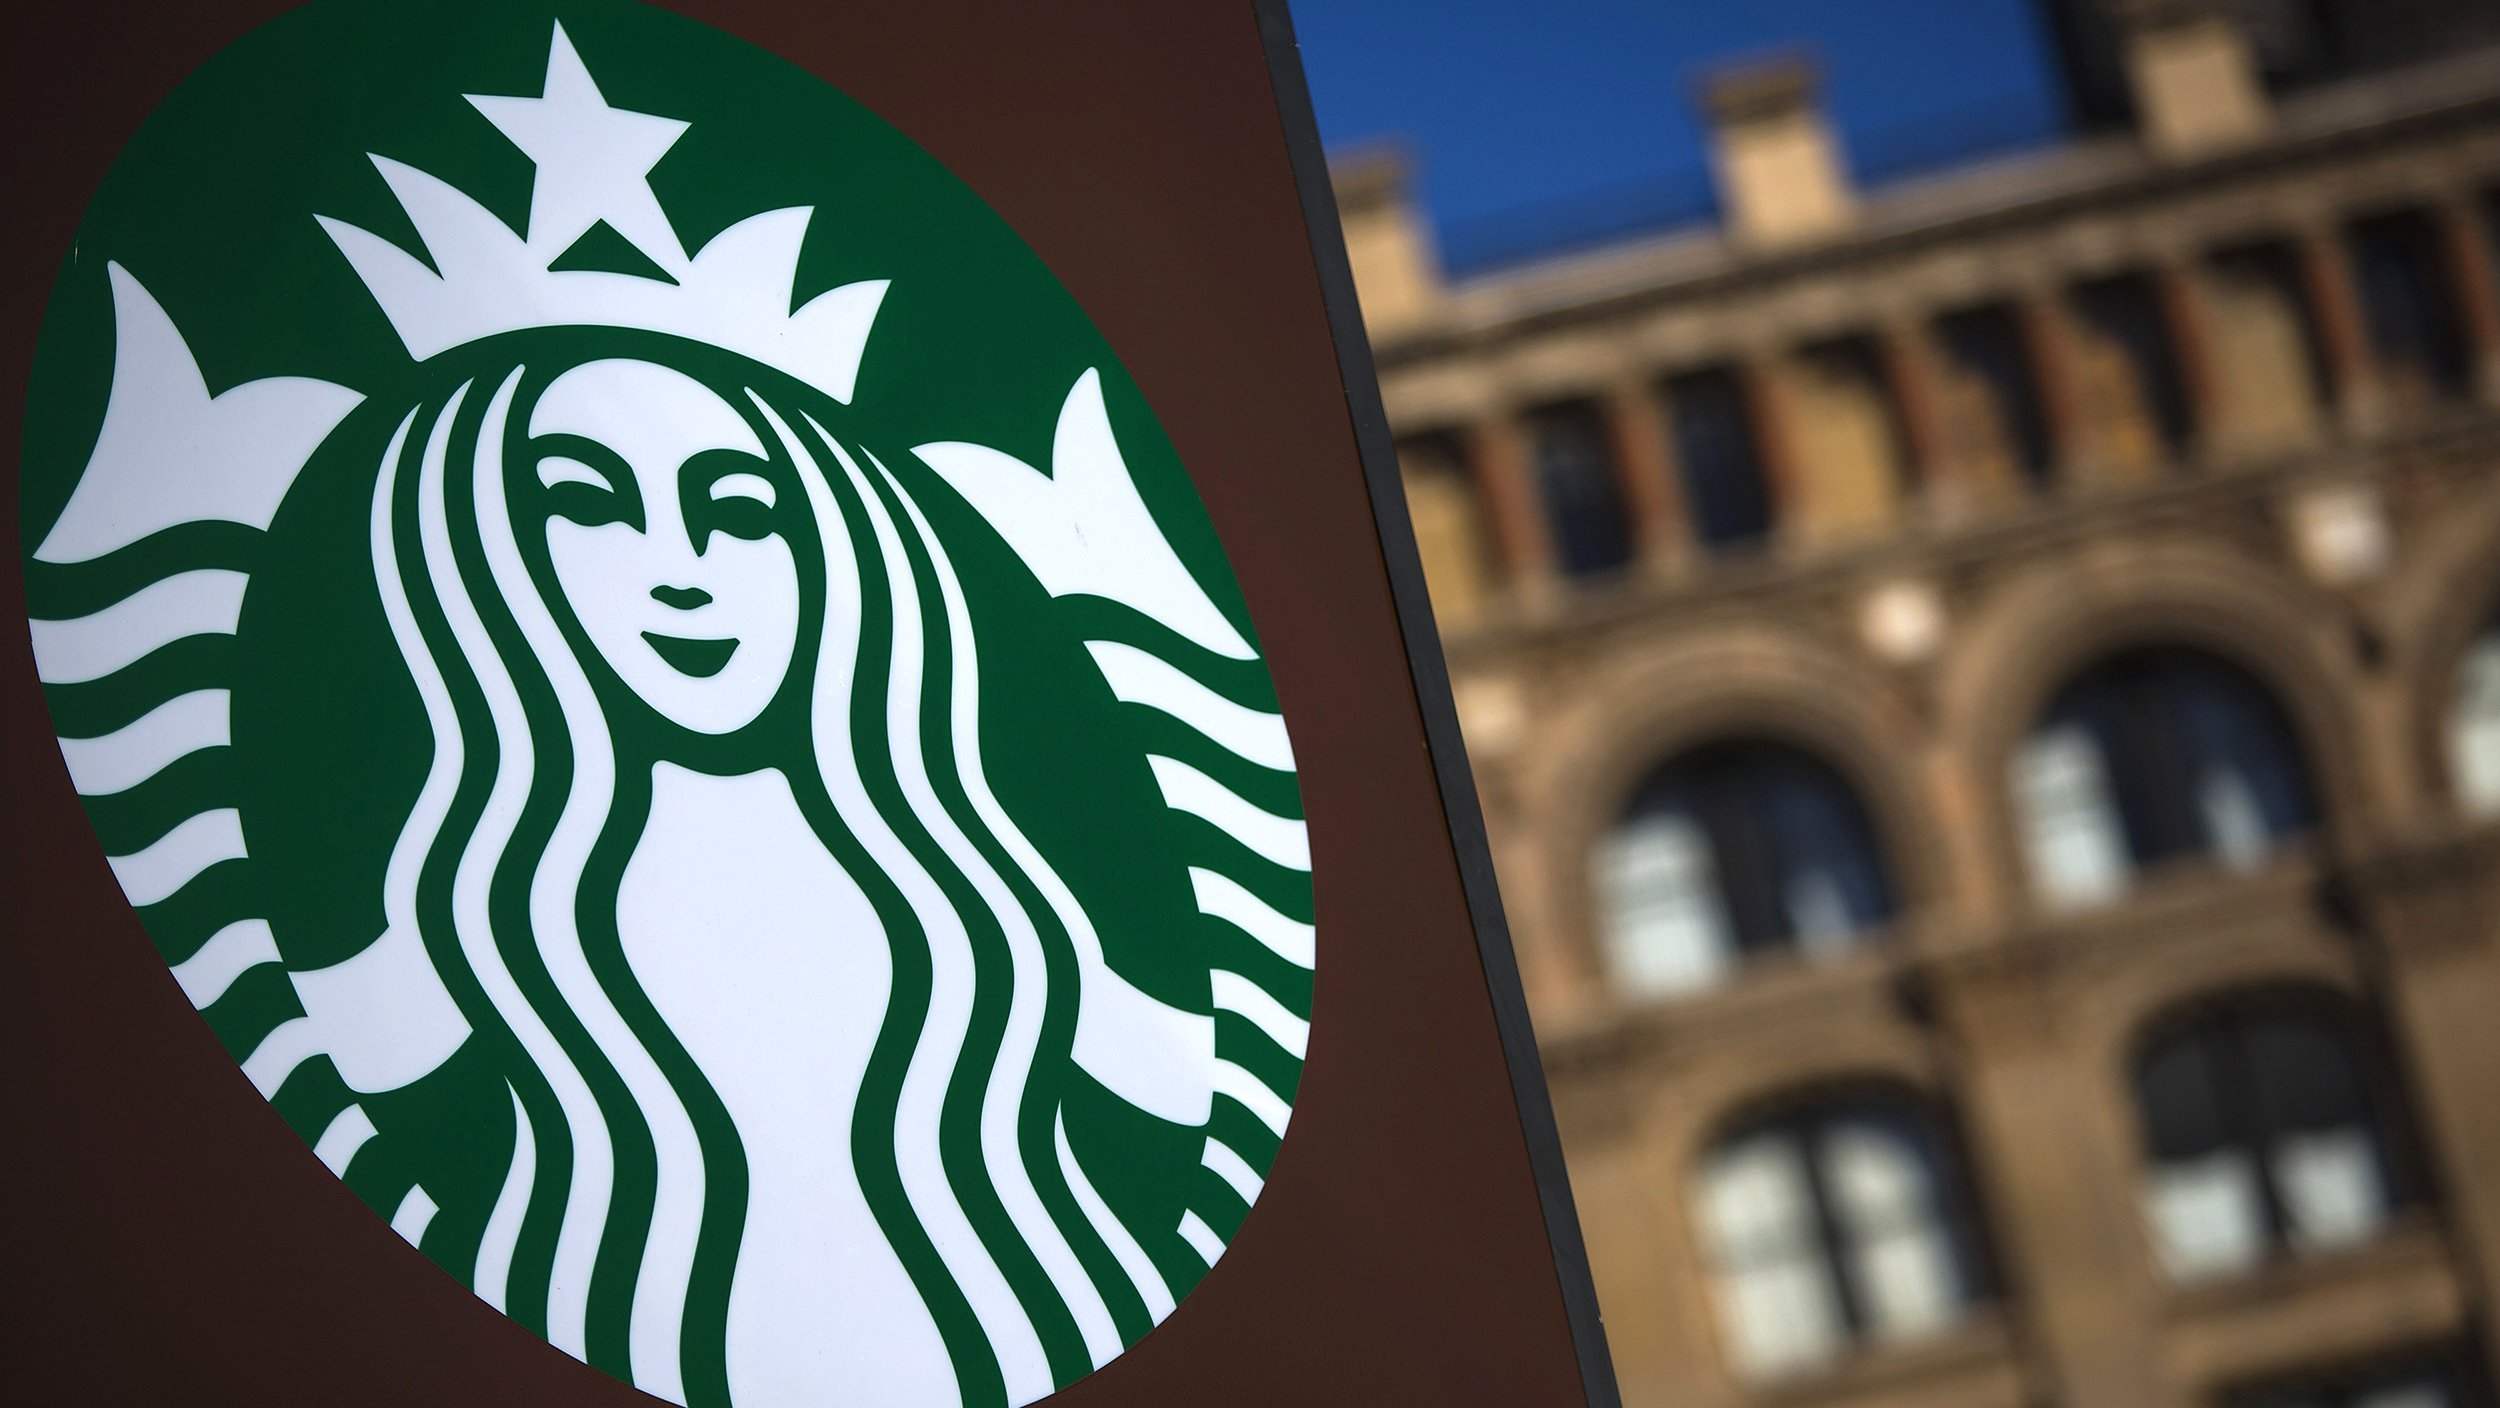 Over 700 Starbucks Customers Pay It Forward In St